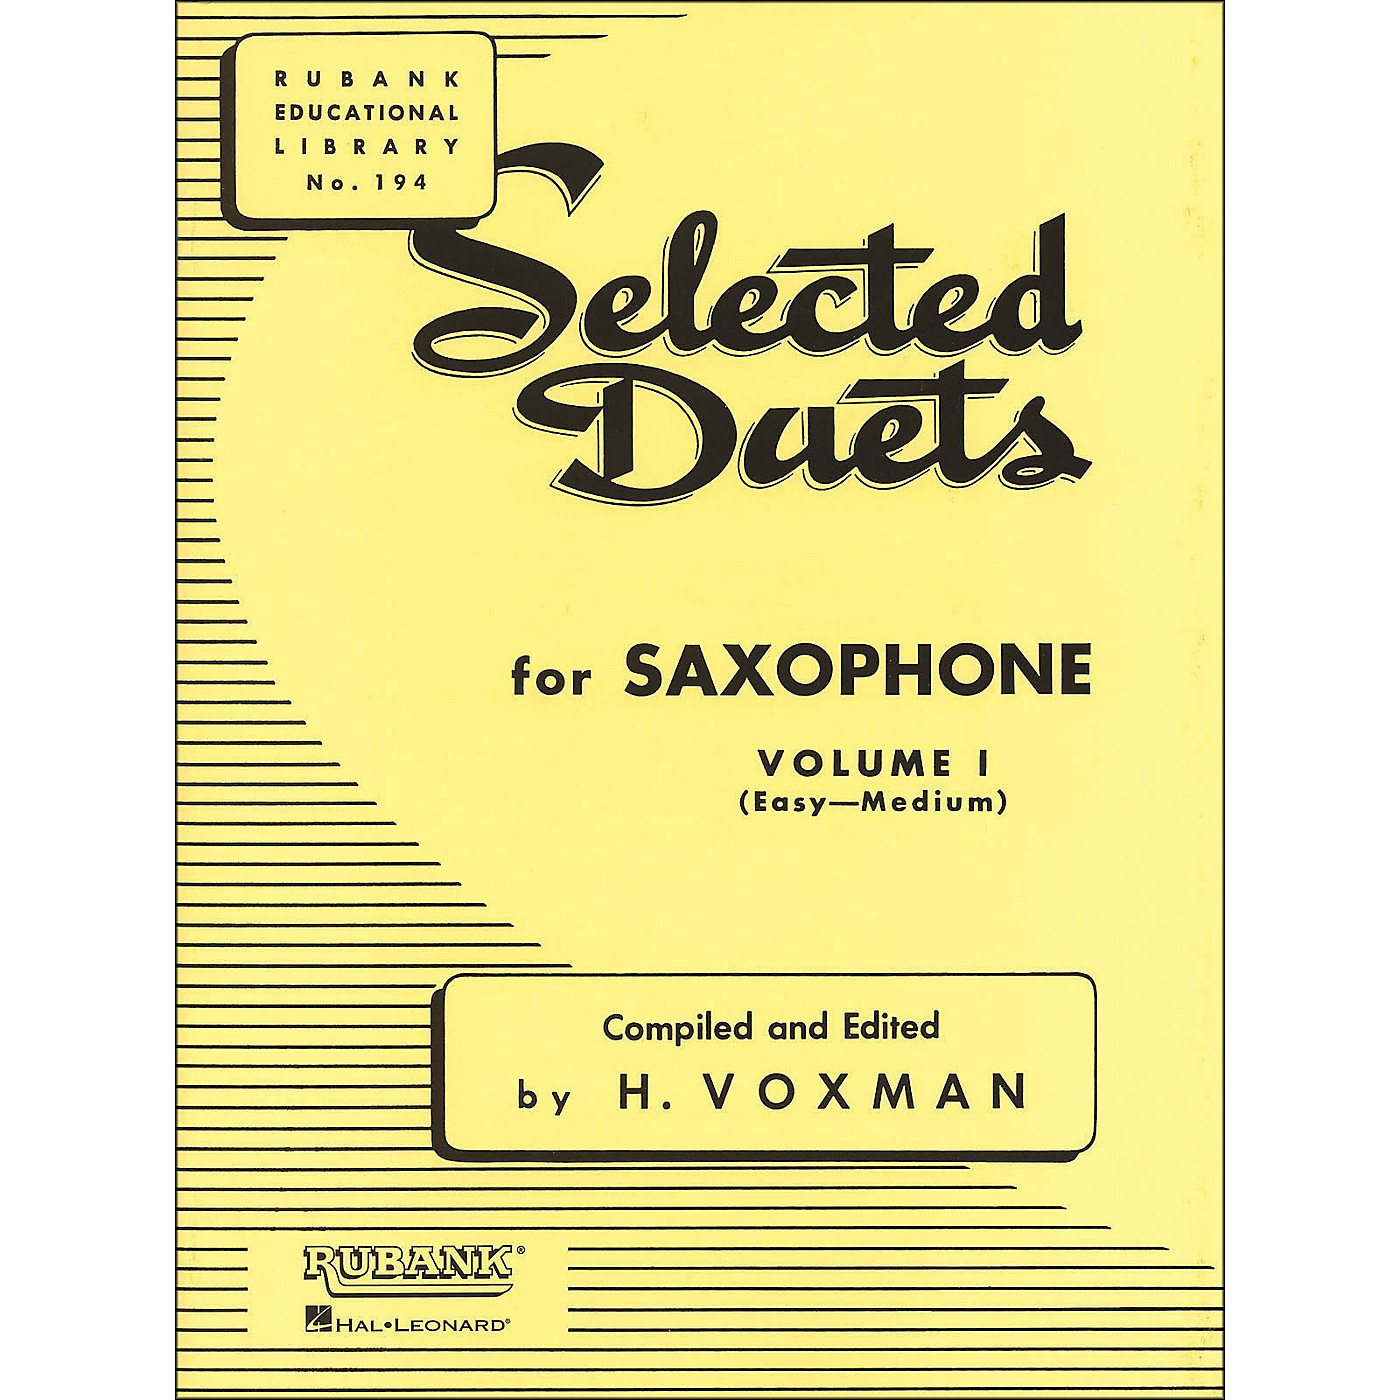 Hal Leonard Rubank Selected Duets for Saxophone Vol 1 Easy/Medium thumbnail